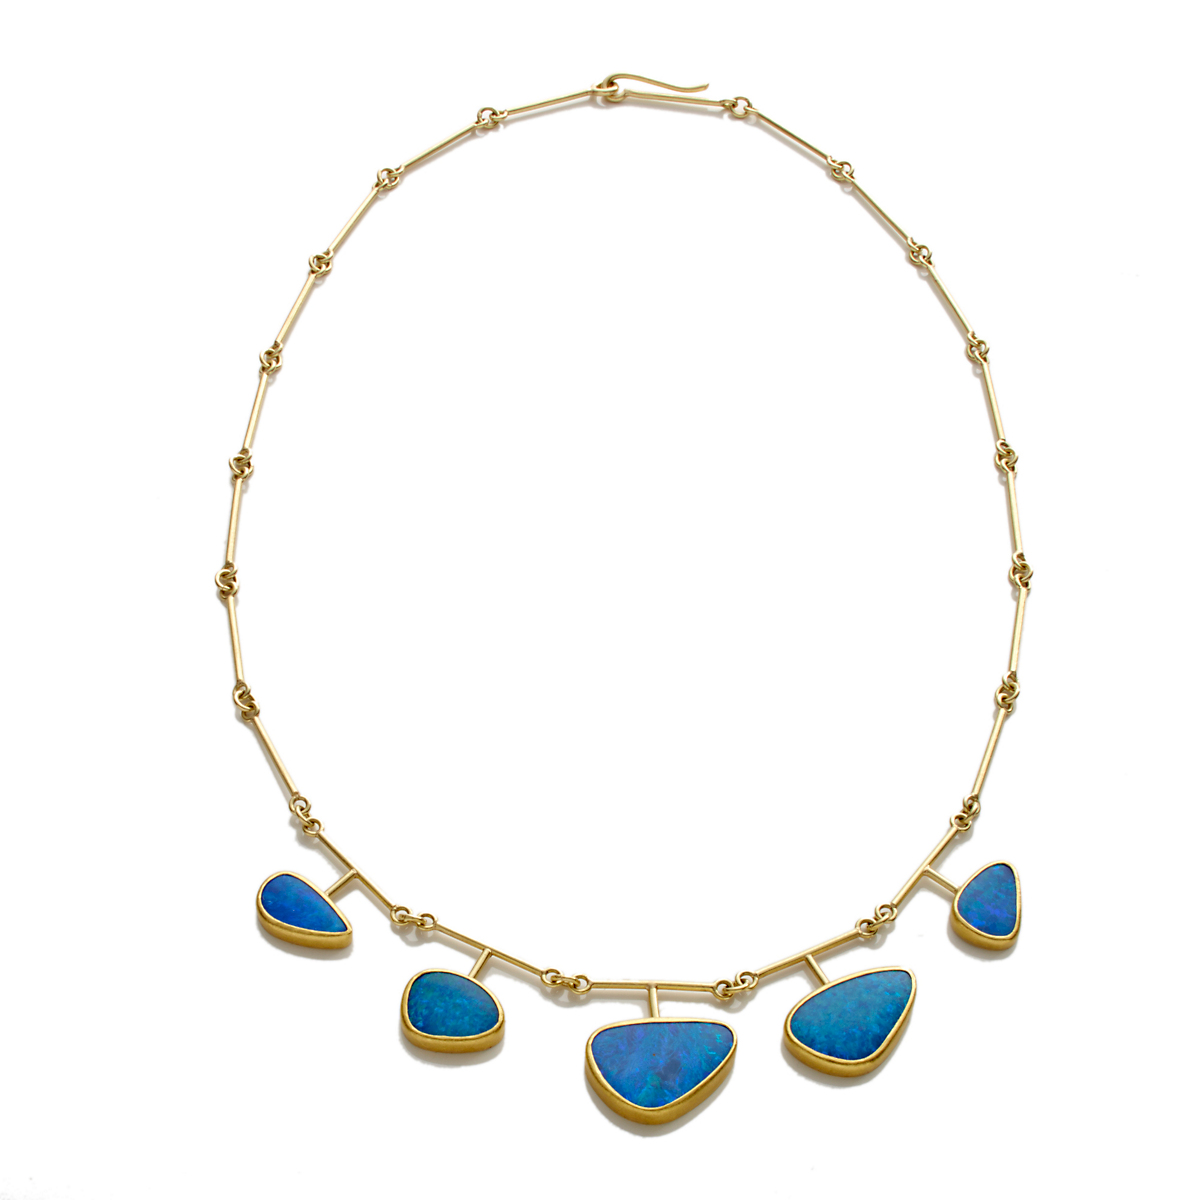 Petra Class Five Opal Doublet Extension Necklace